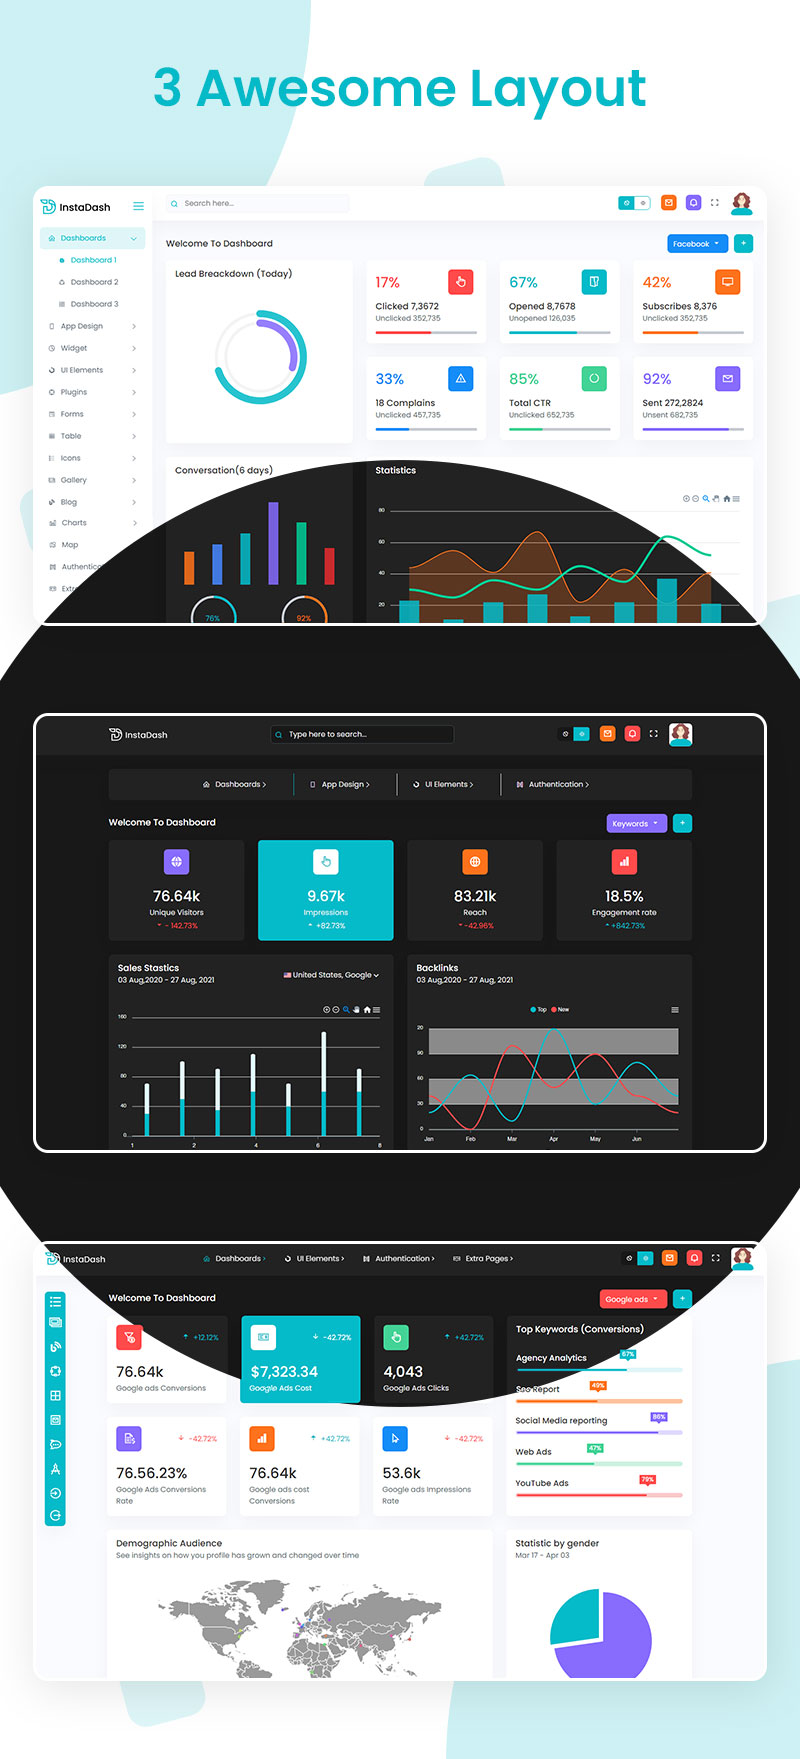 VueJS HTML and SCSS Reporting Admin Dashboard | InstaDash | Iqonic Design vuejs html and scss reporting admin dashboard Instadash 4